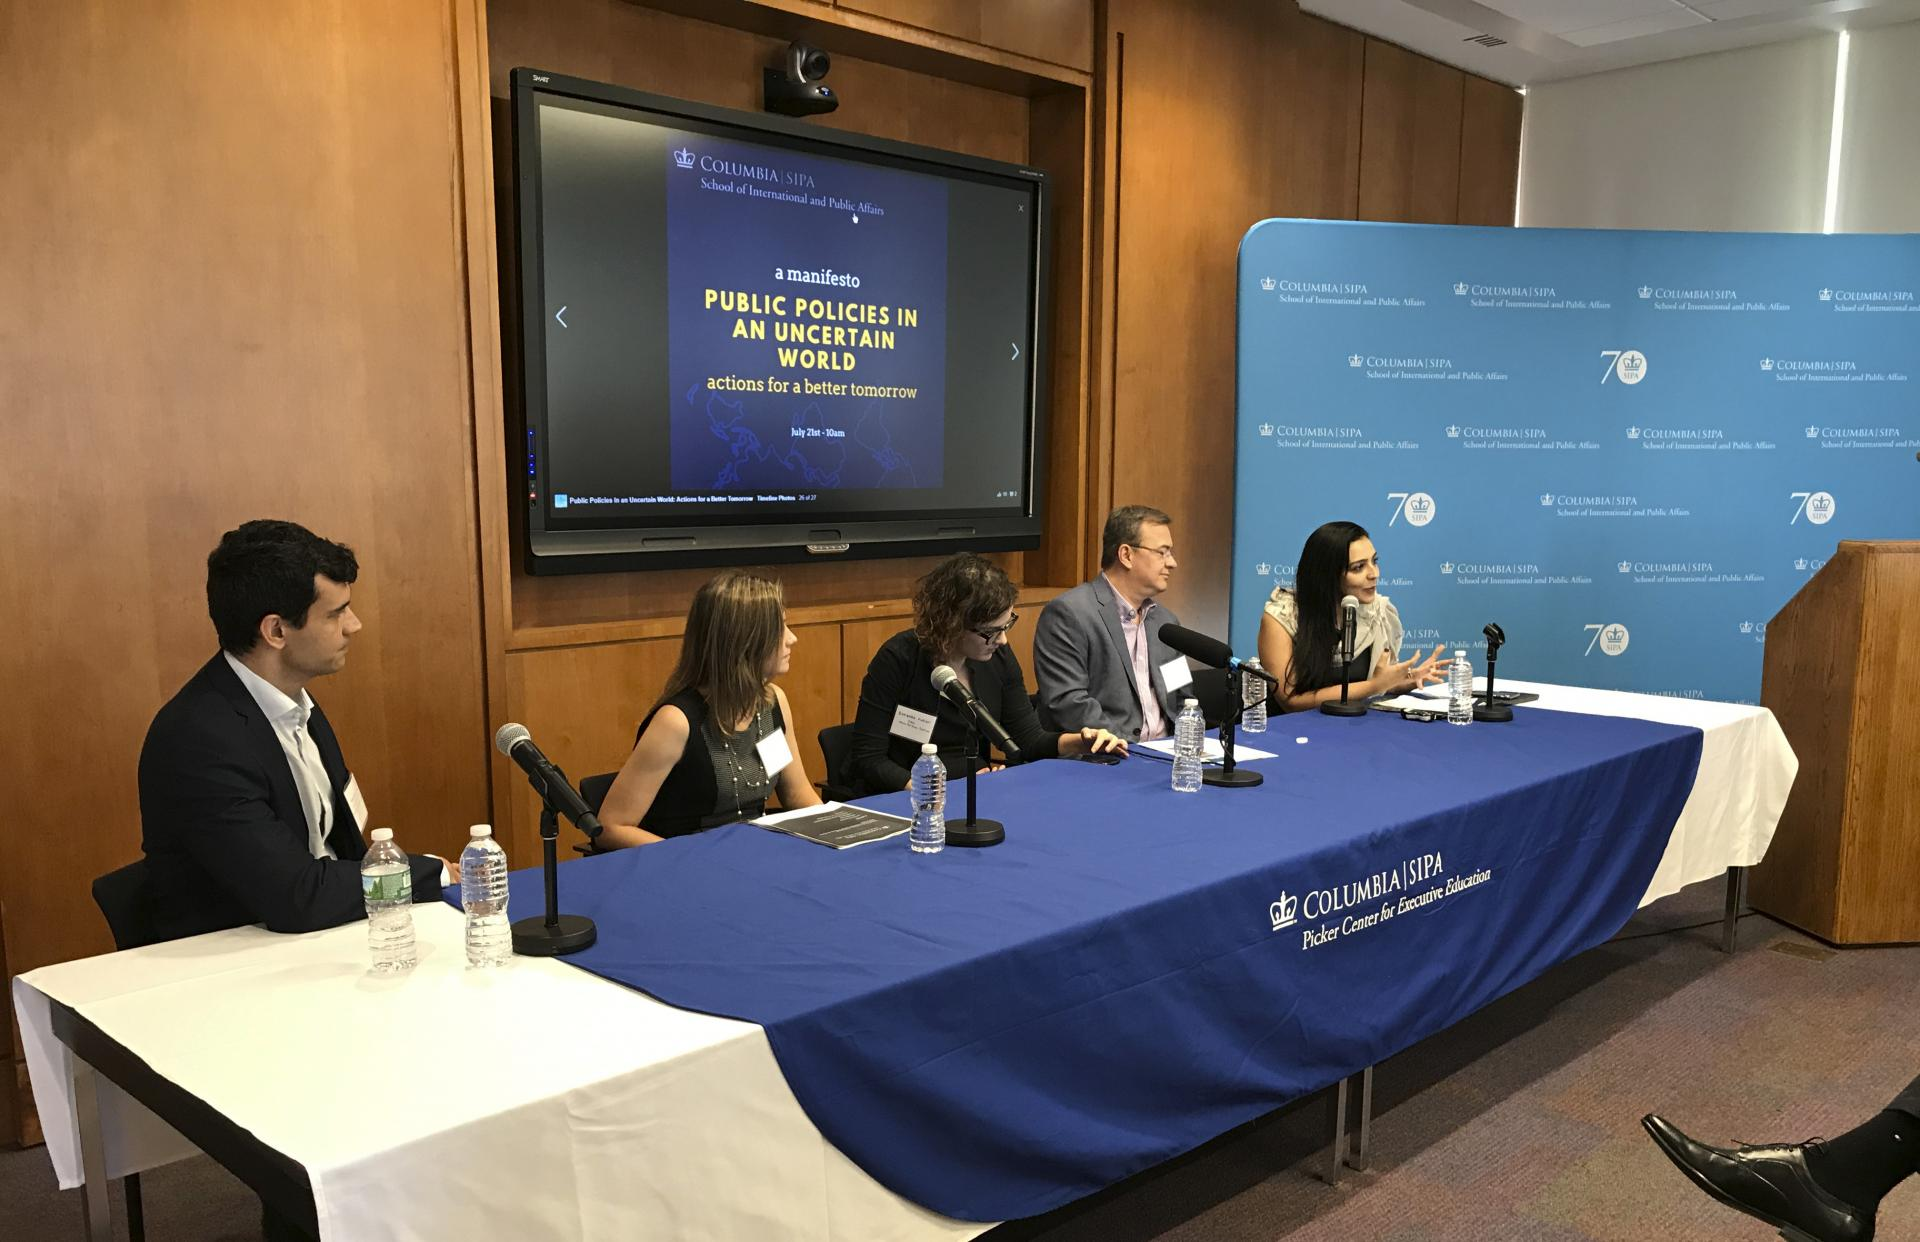 Panel during the Seminar Public Policies in an Uncertain World